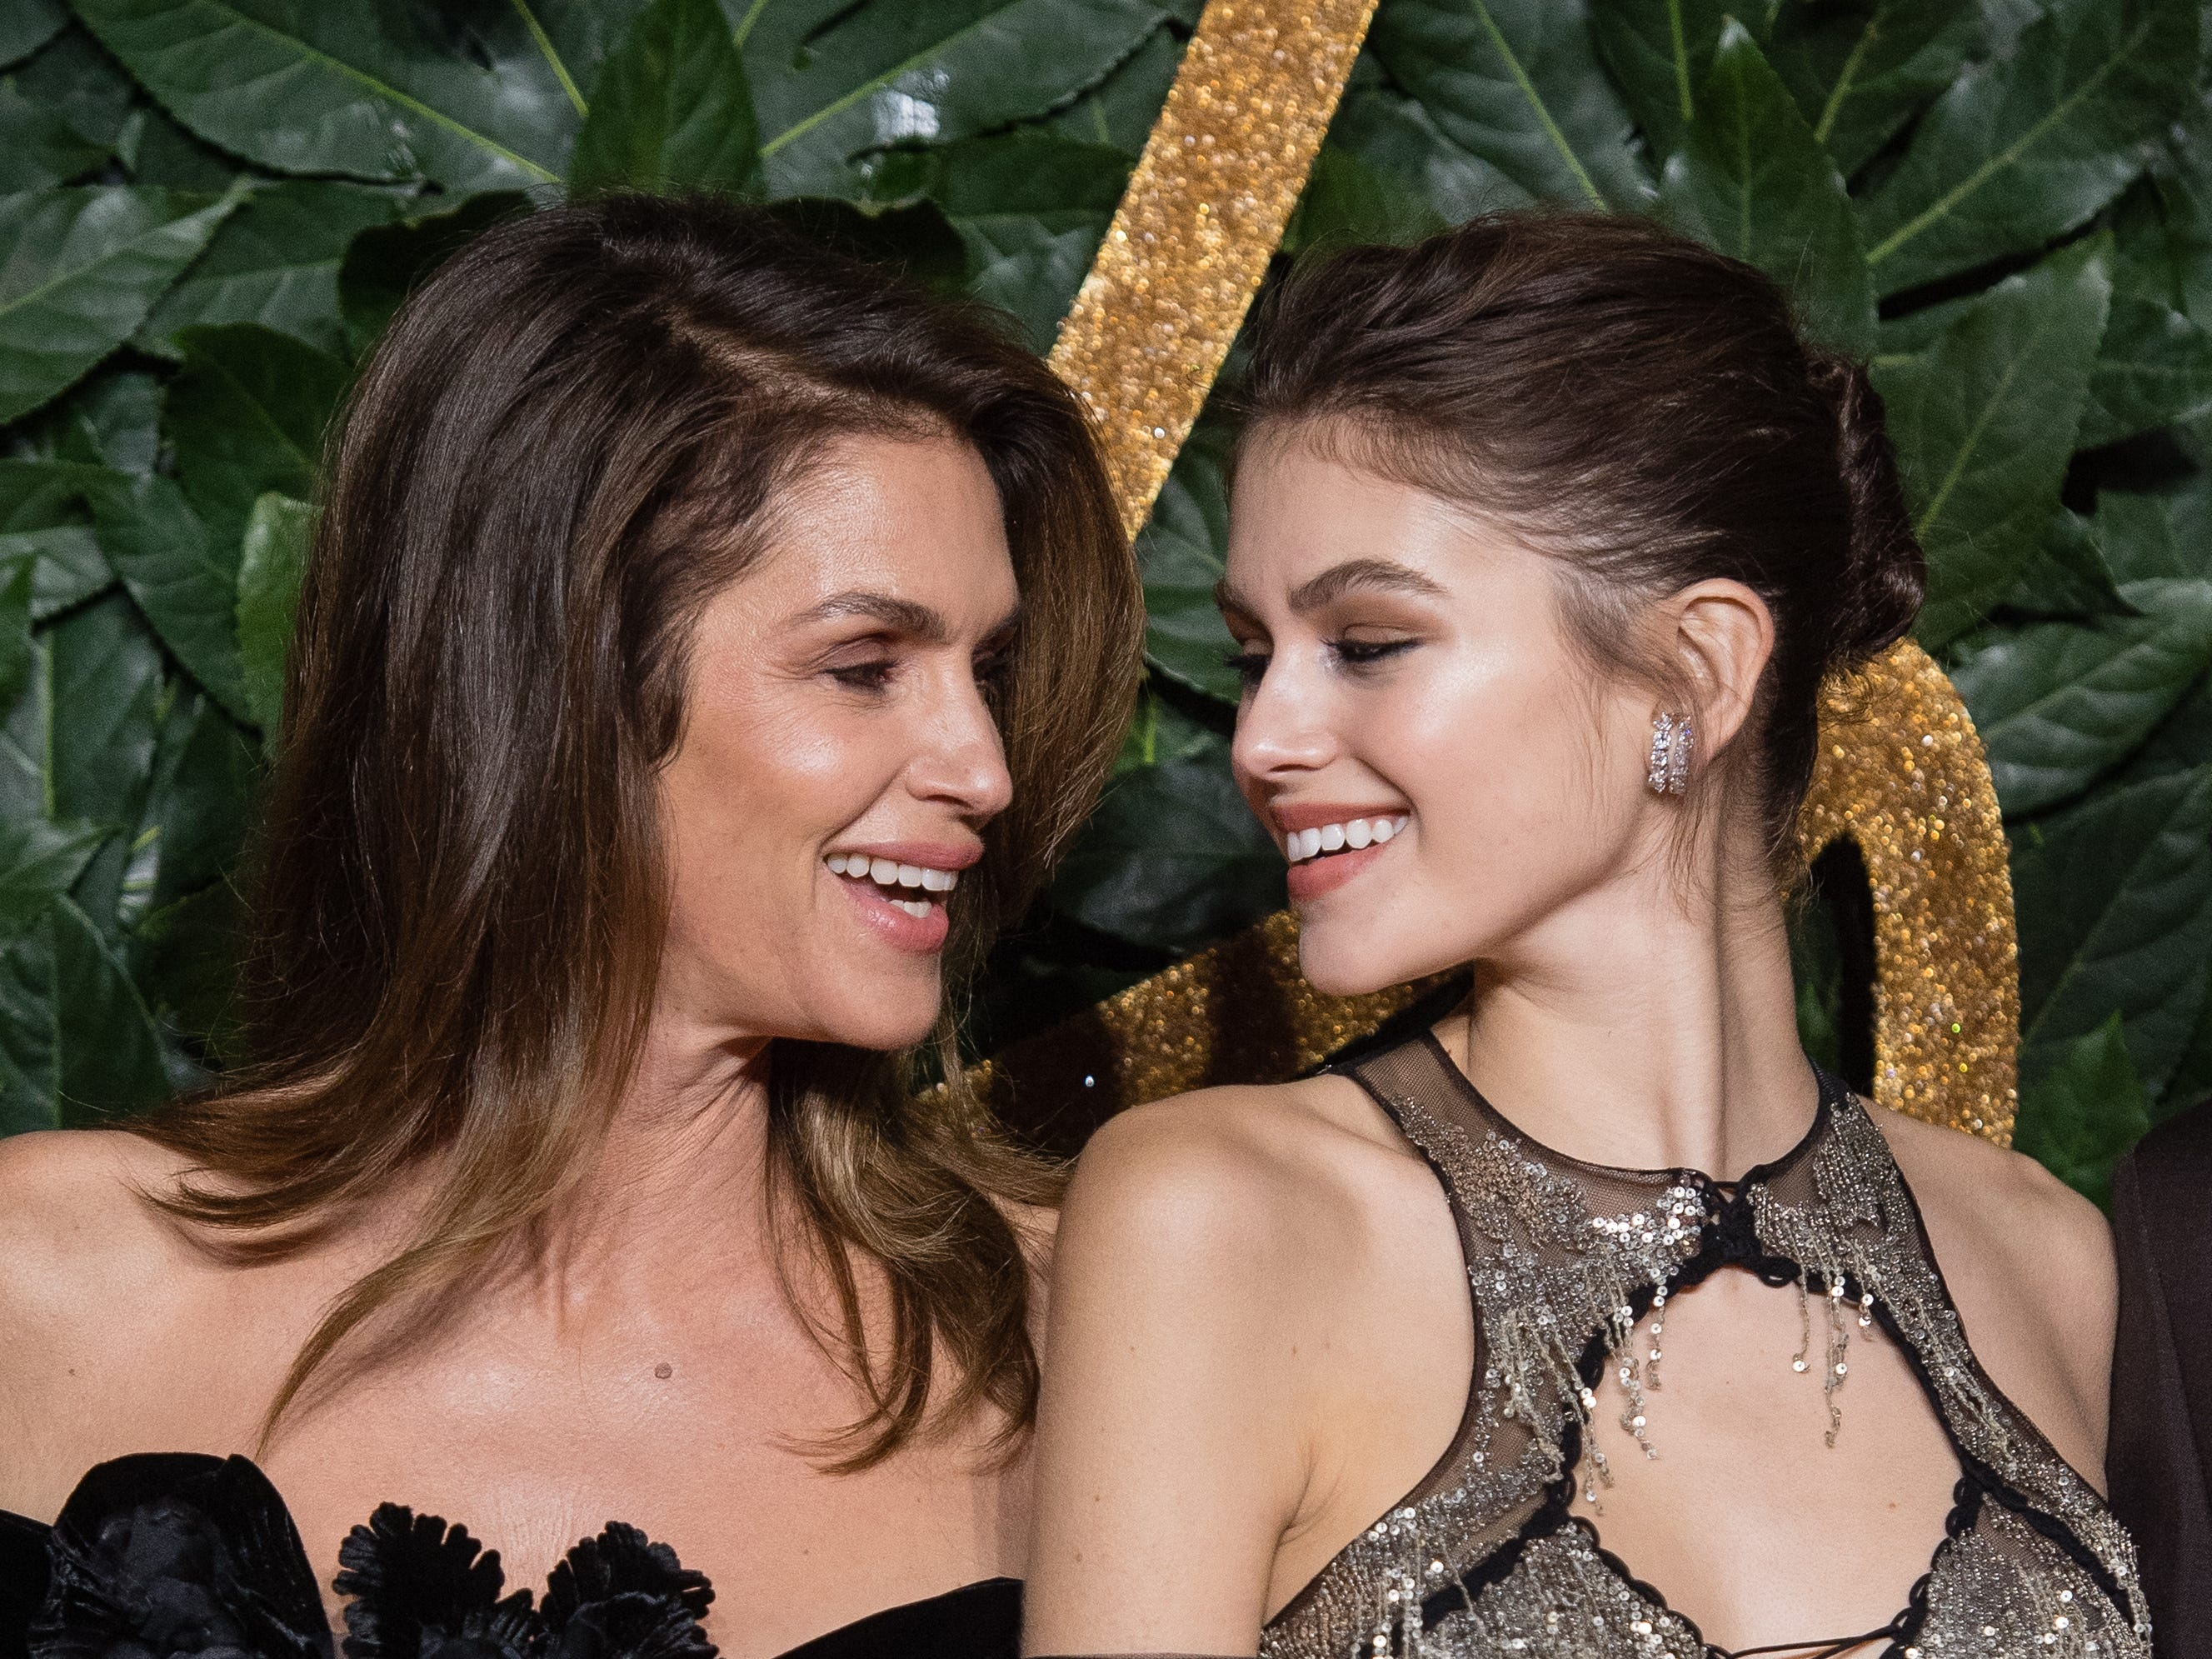 LONDON, ENGLAND - DECEMBER 10:   Cindy Crawford and Kaia Gerber arrive at The Fashion Awards 2018 In Partnership With Swarovski at Royal Albert Hall on December 10, 2018 in London, England. (Photo by Samir Hussein/Samir Hussein/WireImage) ORG XMIT: 775267791 ORIG FILE ID: 1080533084